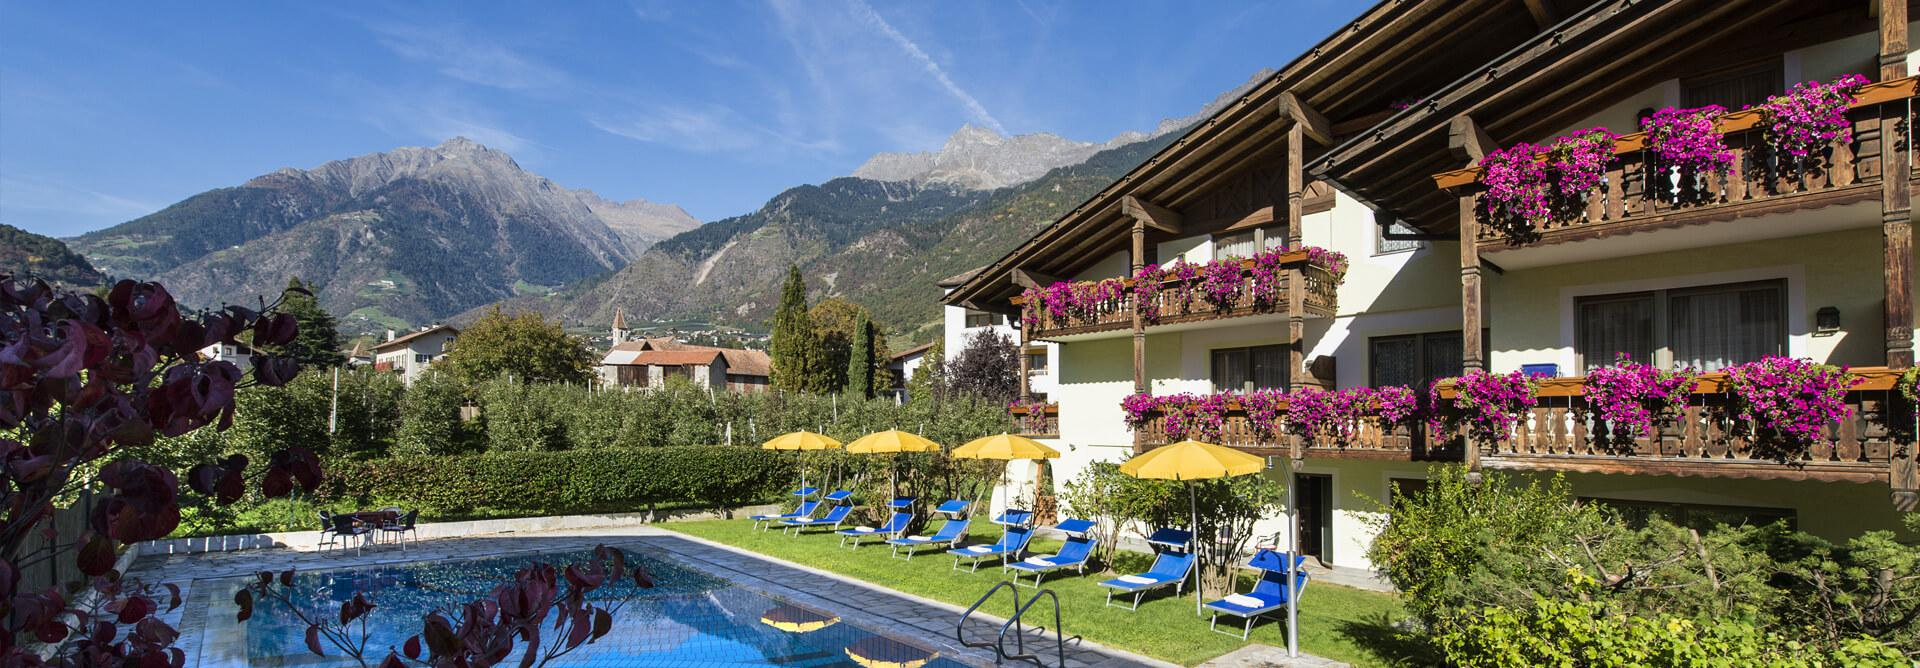 Apartment in South Tyrol: your holiday in Lagundo/Algund